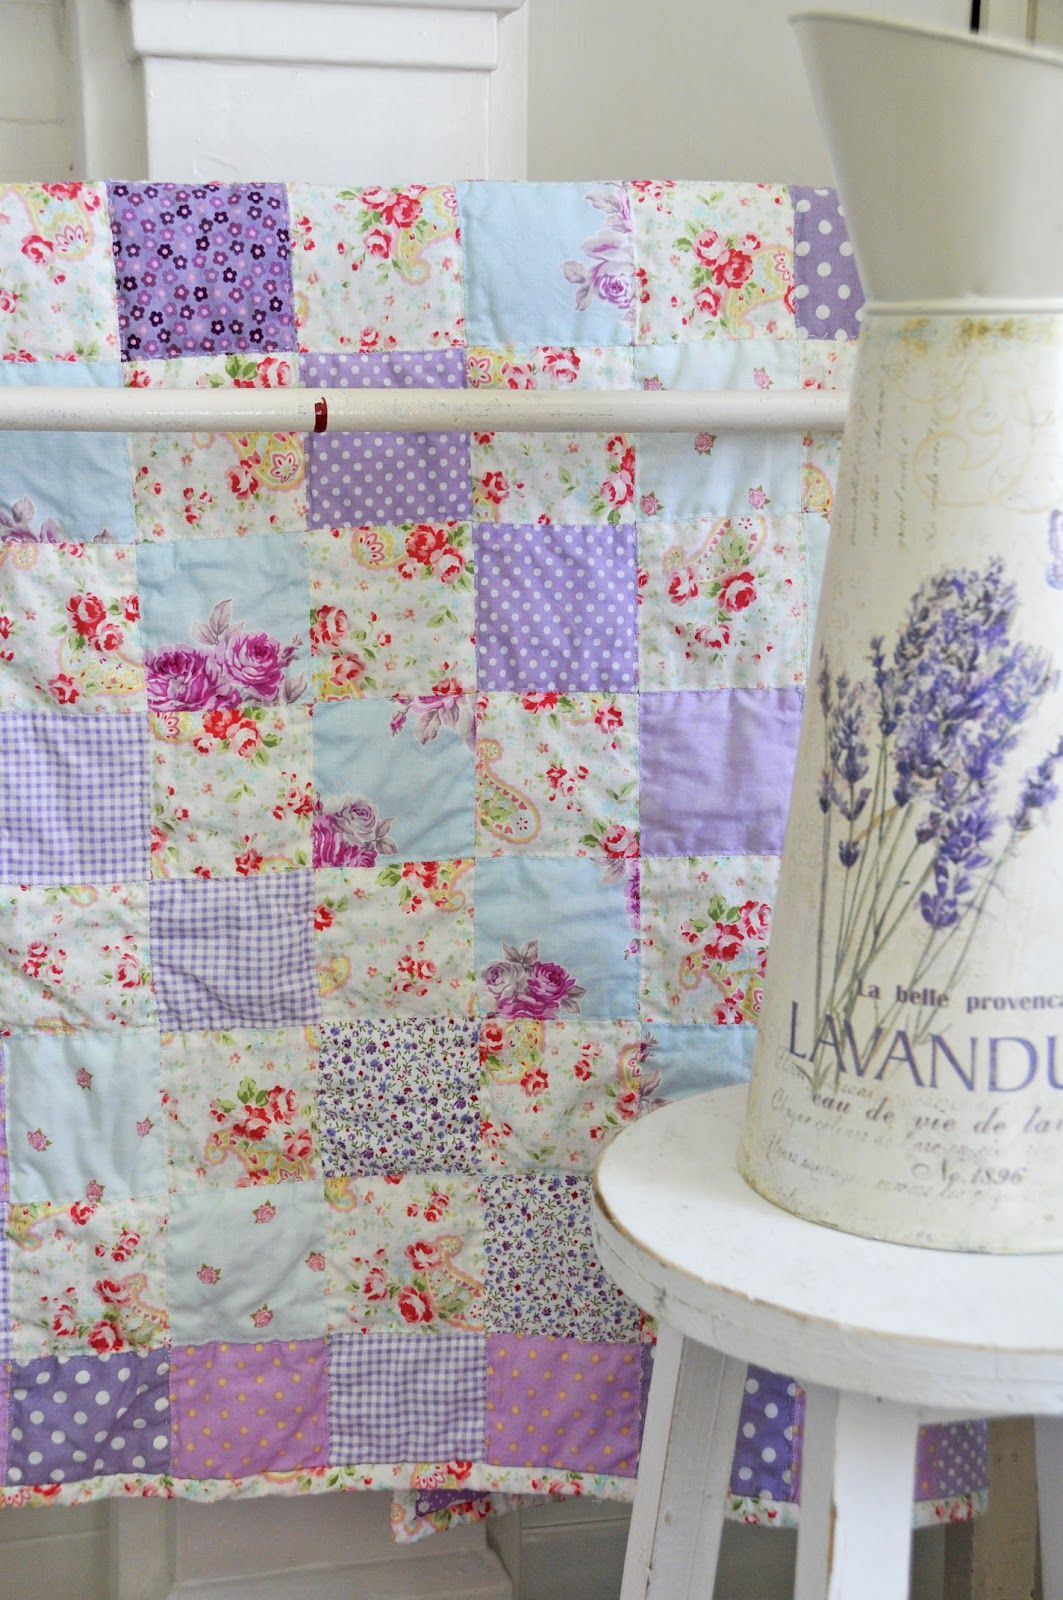 pretty colors in this lavender quilt | Quilts I like | Pinterest ... : lavender quilts - Adamdwight.com